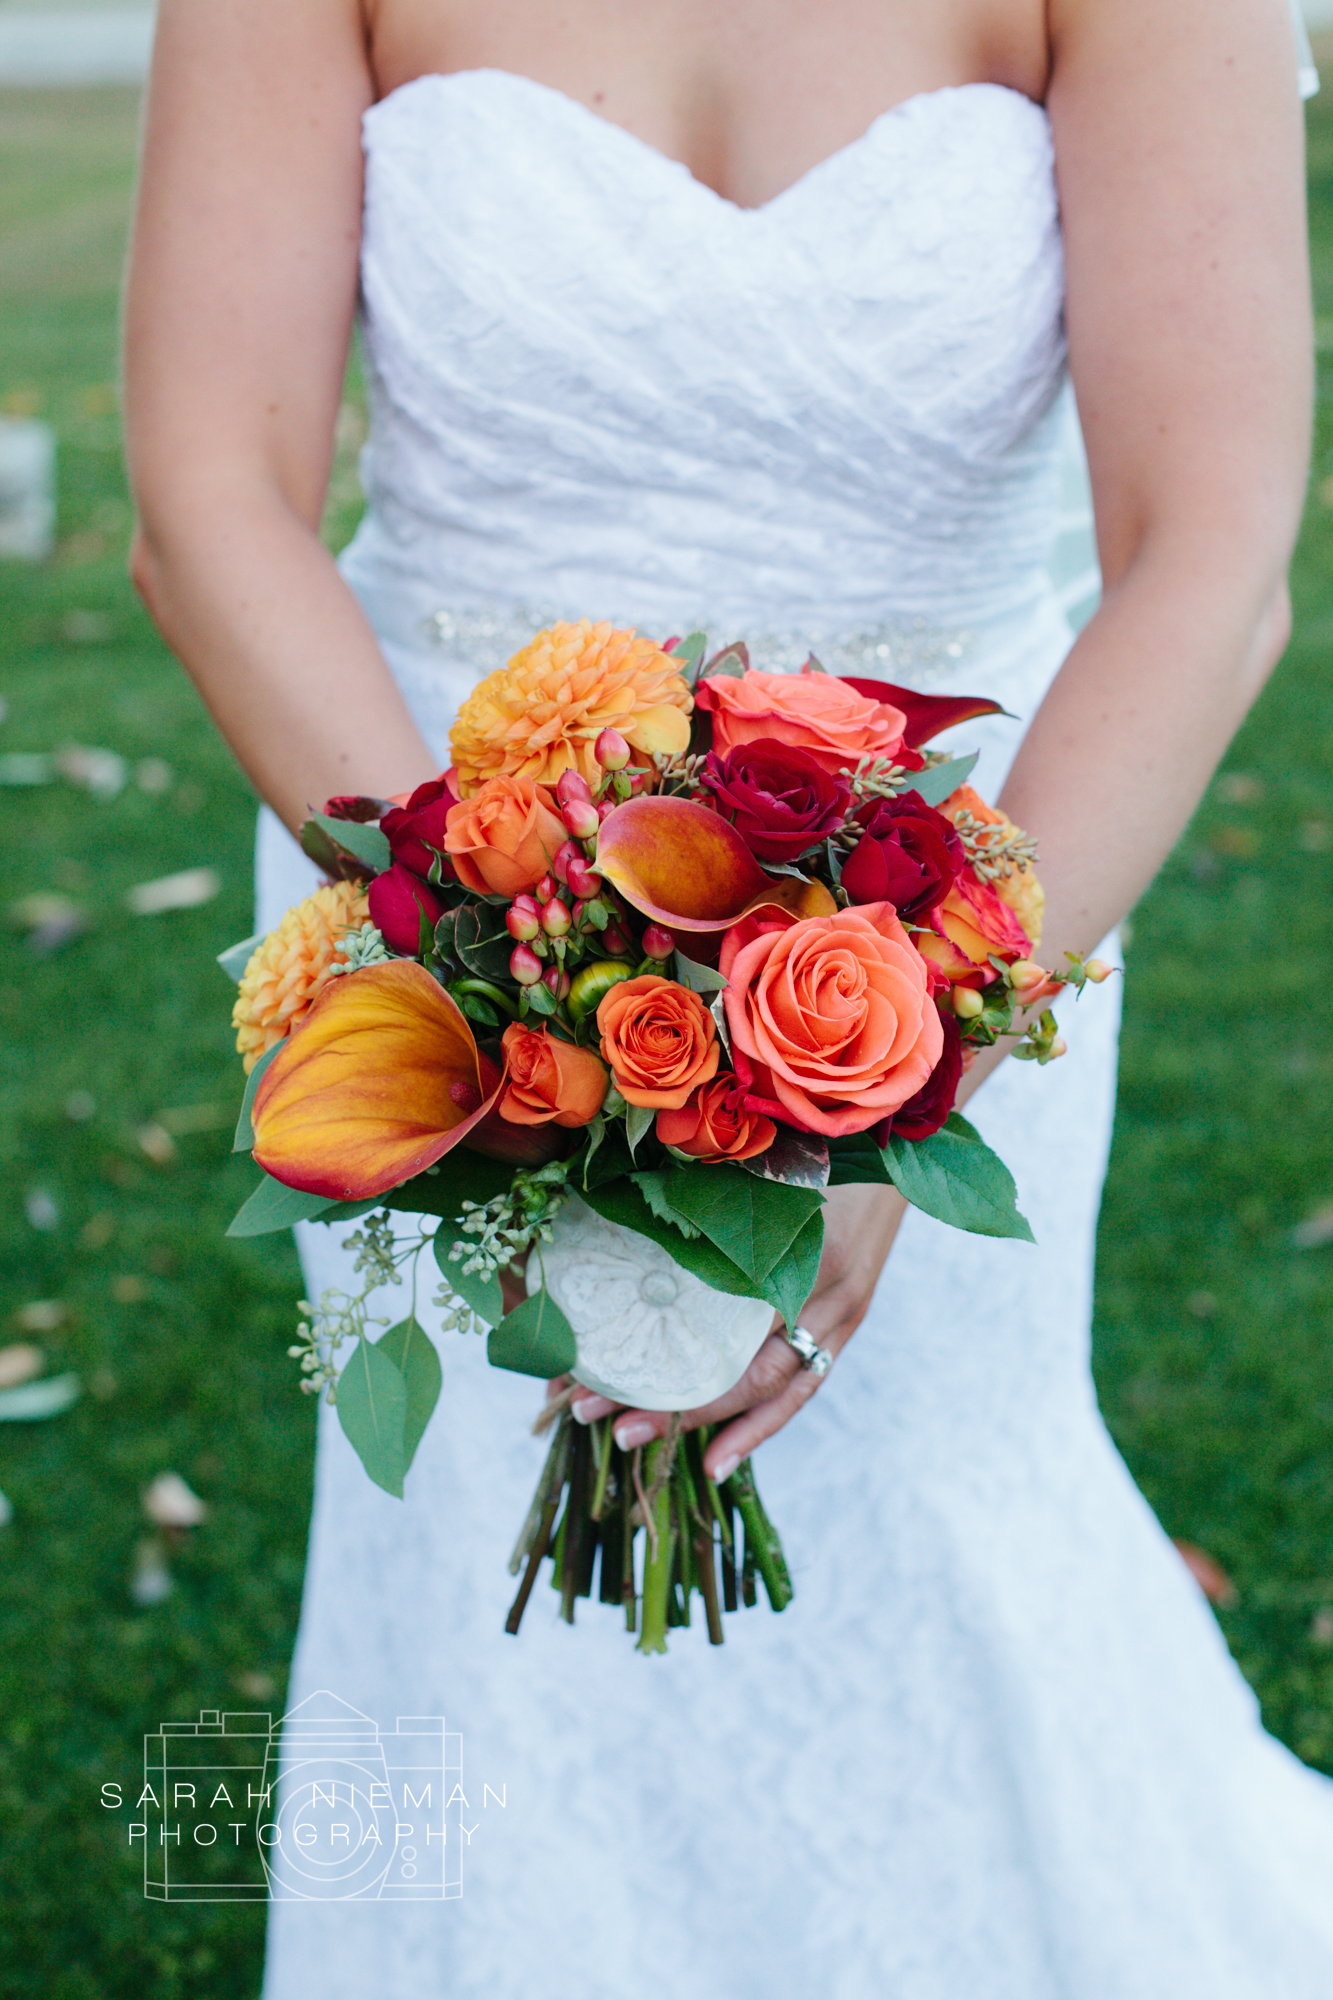 I couldn't get enough of these flowers, so much orange, such perfection! Perfect for an October wedding.